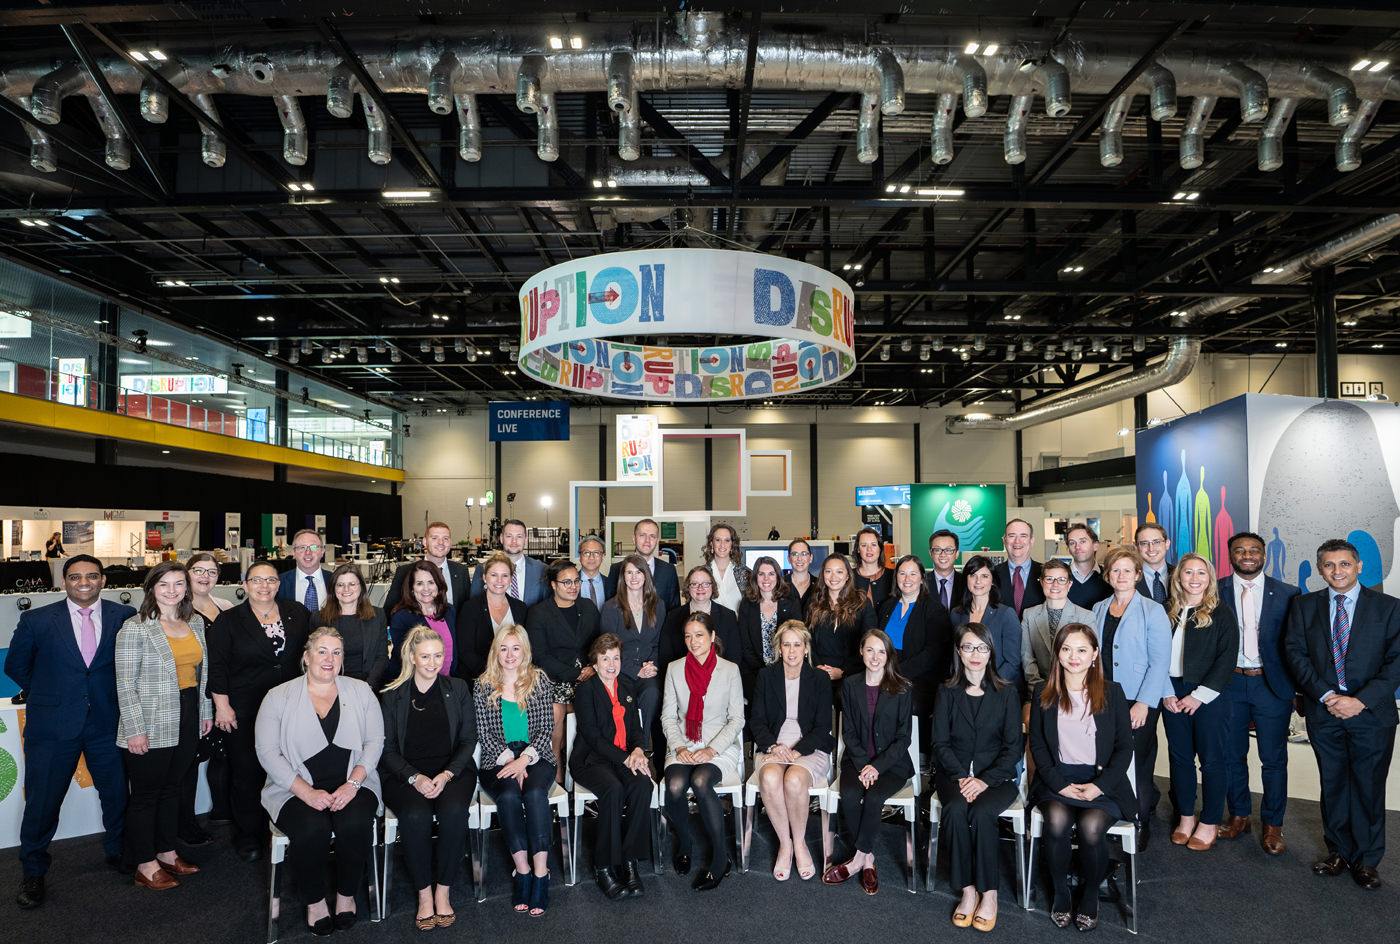 The CFA Institute team at the 2019 Annual Conference